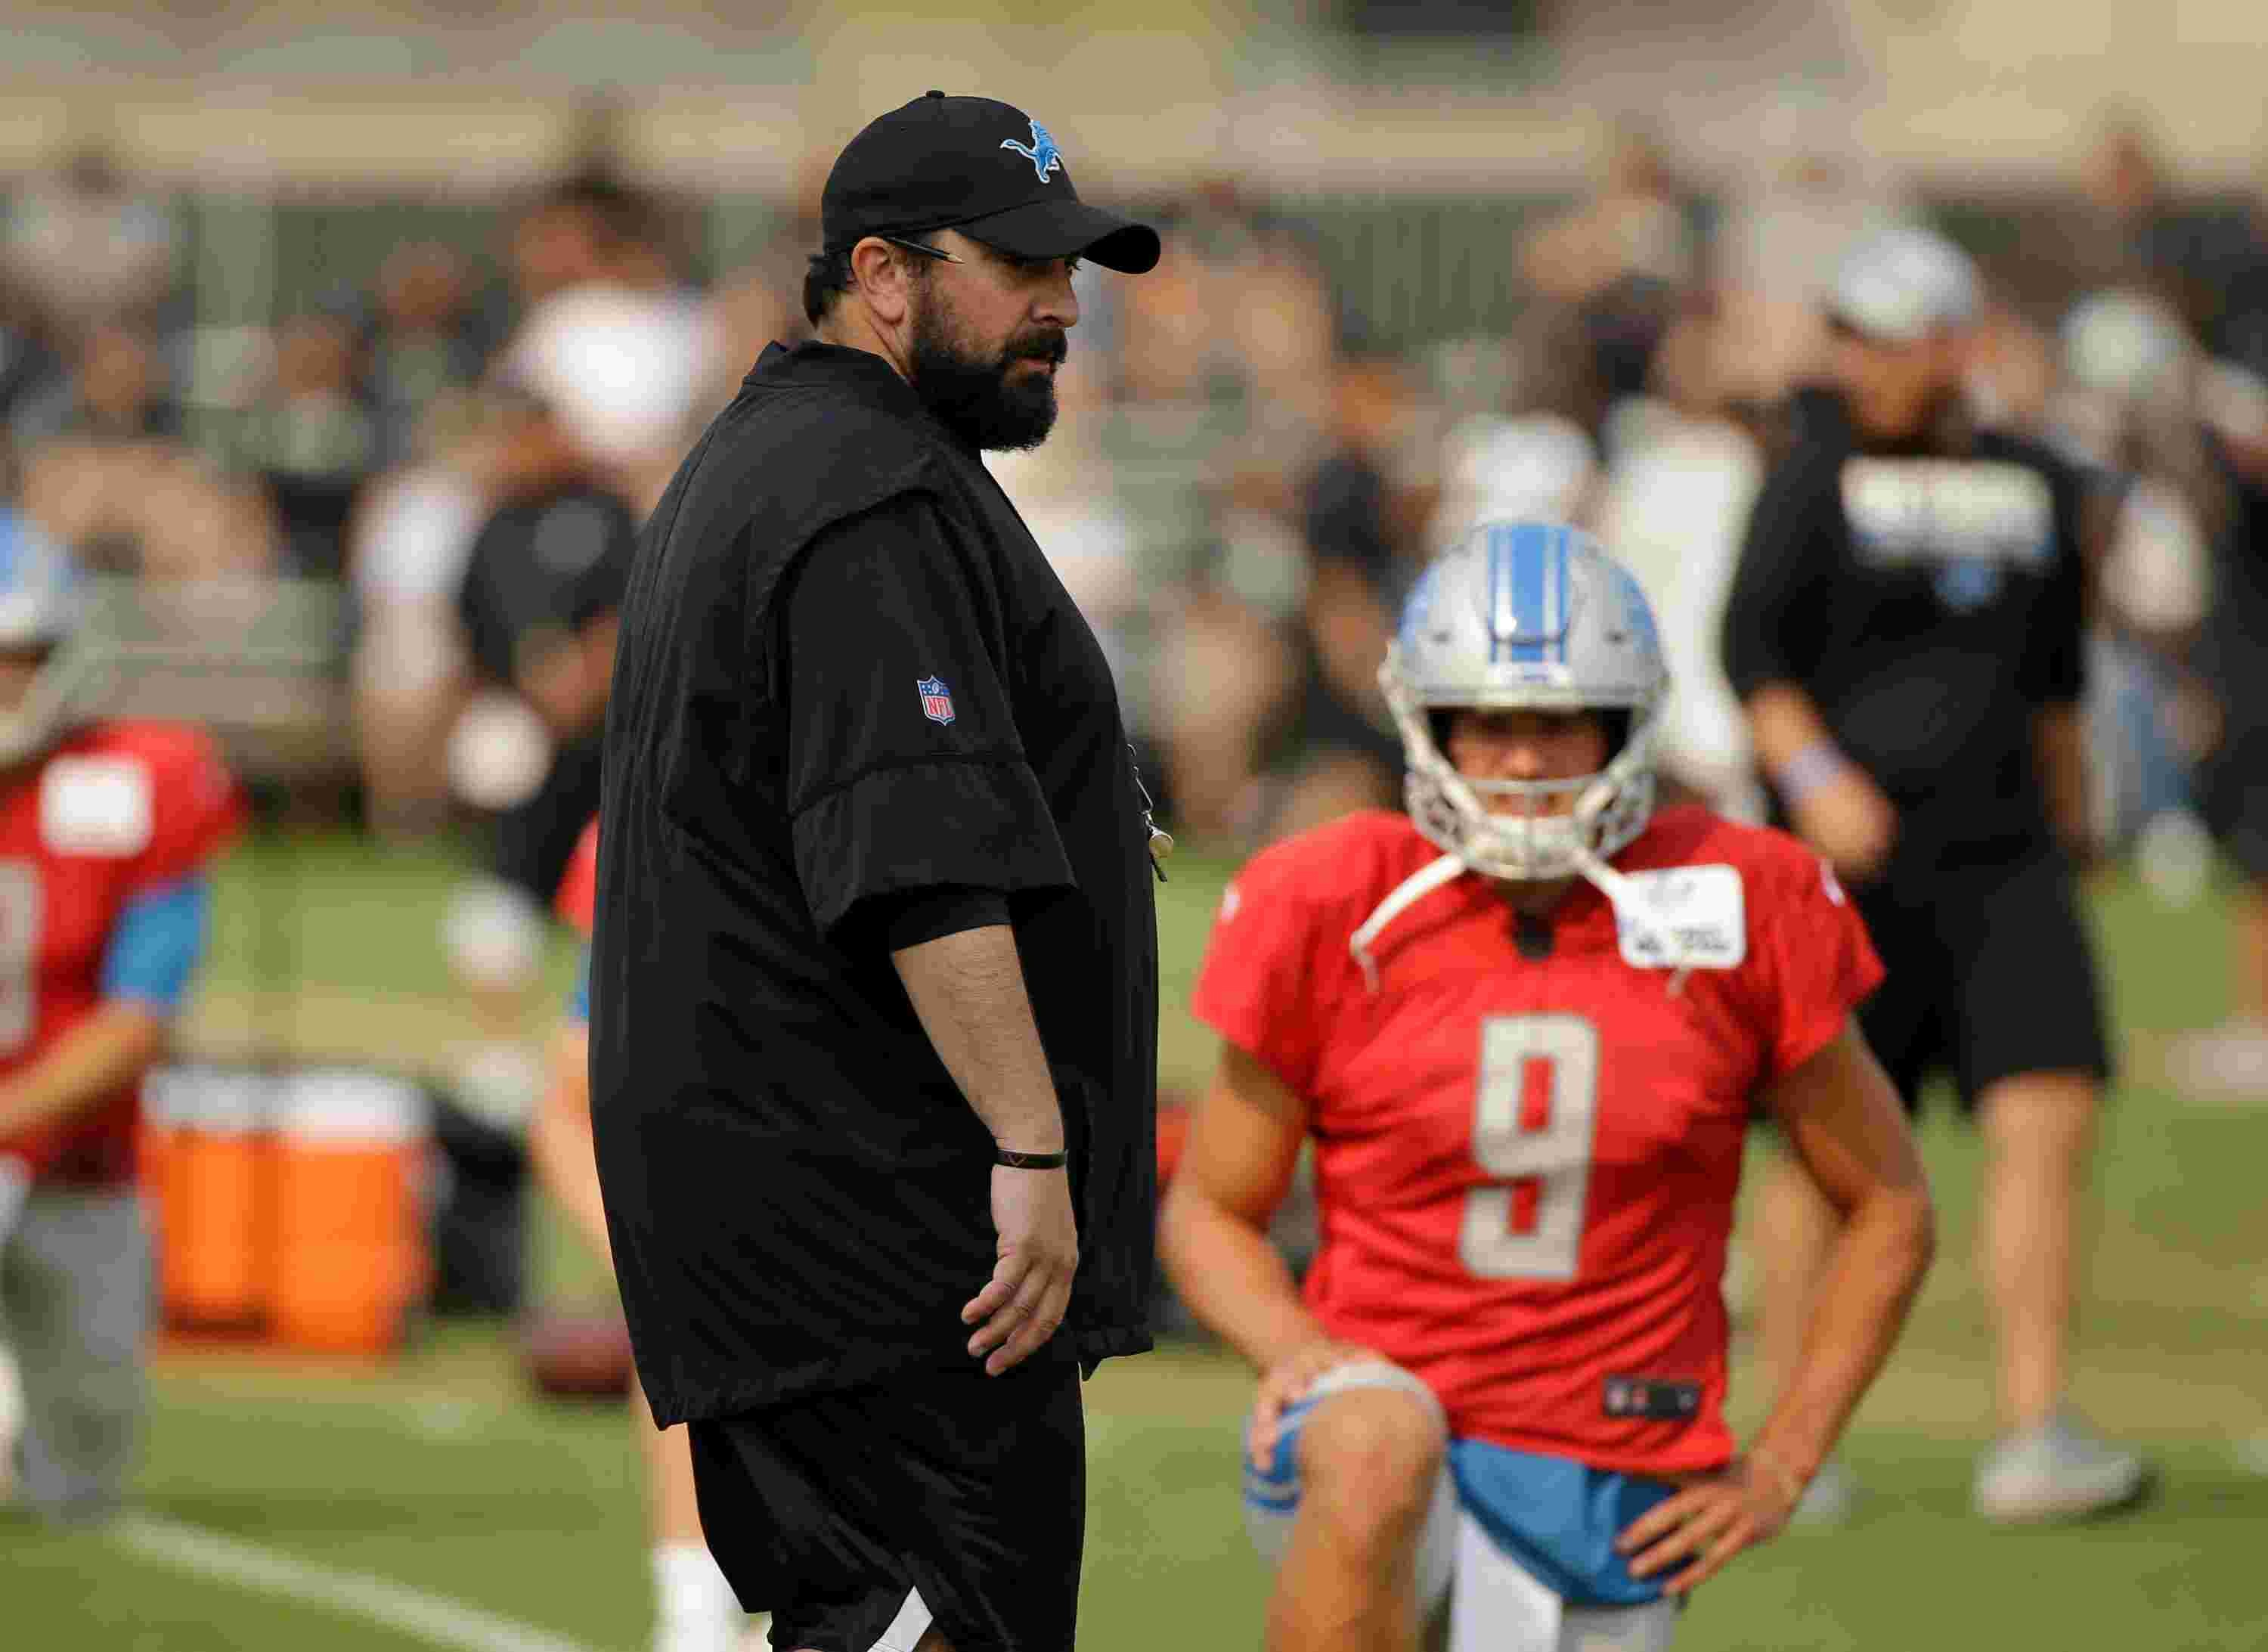 differently c03b1 fb72b Position change could lead to payday for Detroit Lions ...